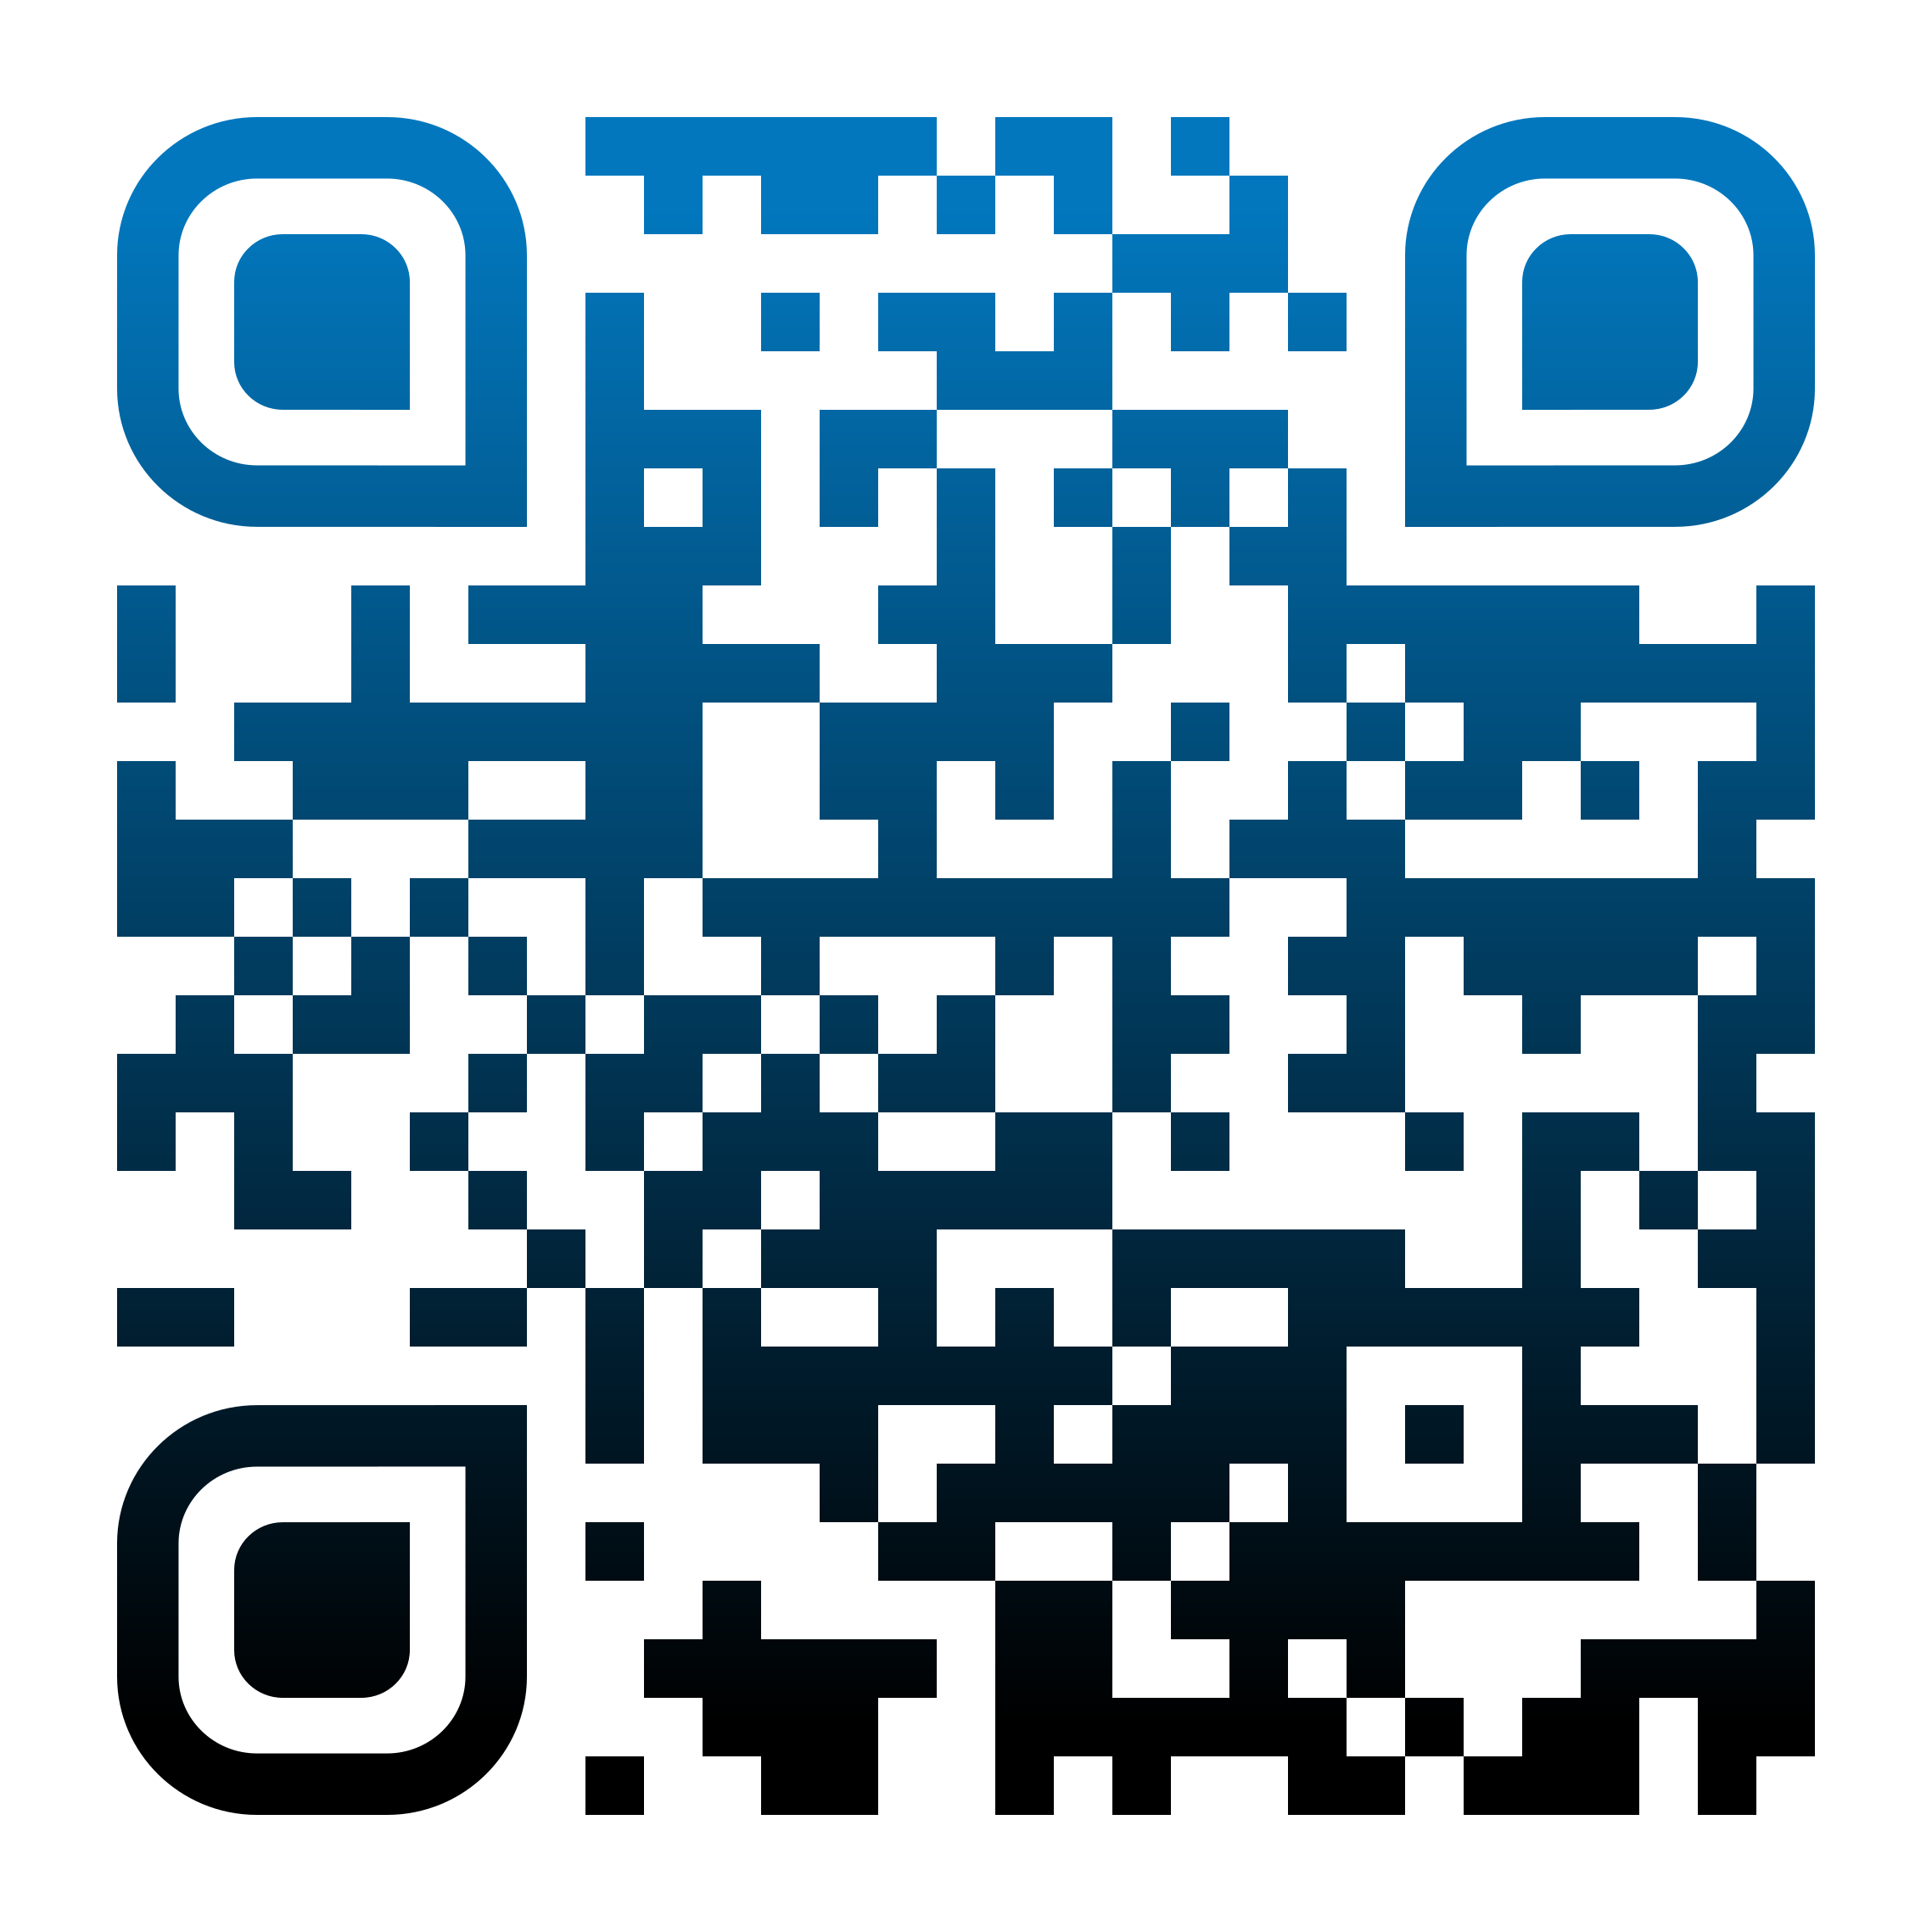 <a href ='https://go.biznet.id/servicechangeform' target='_blank'>Service Change Form</a><br/><small><b>*click QR Code to enlarged</b></small>